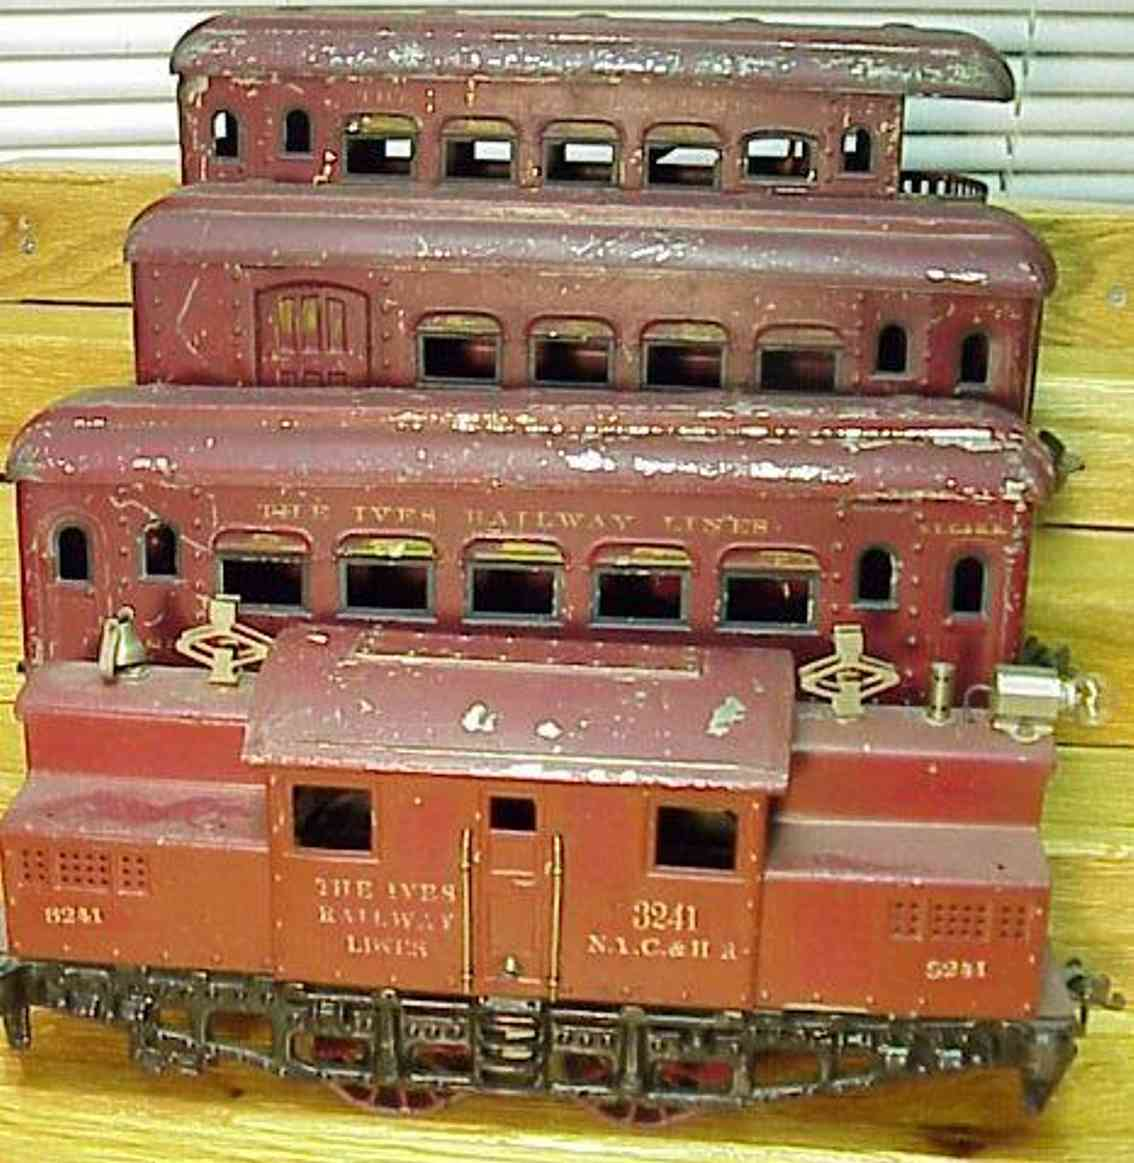 ives set 701 elektrolokomotive 3241 wagen701 3241 184 185 186 rot wide gauge